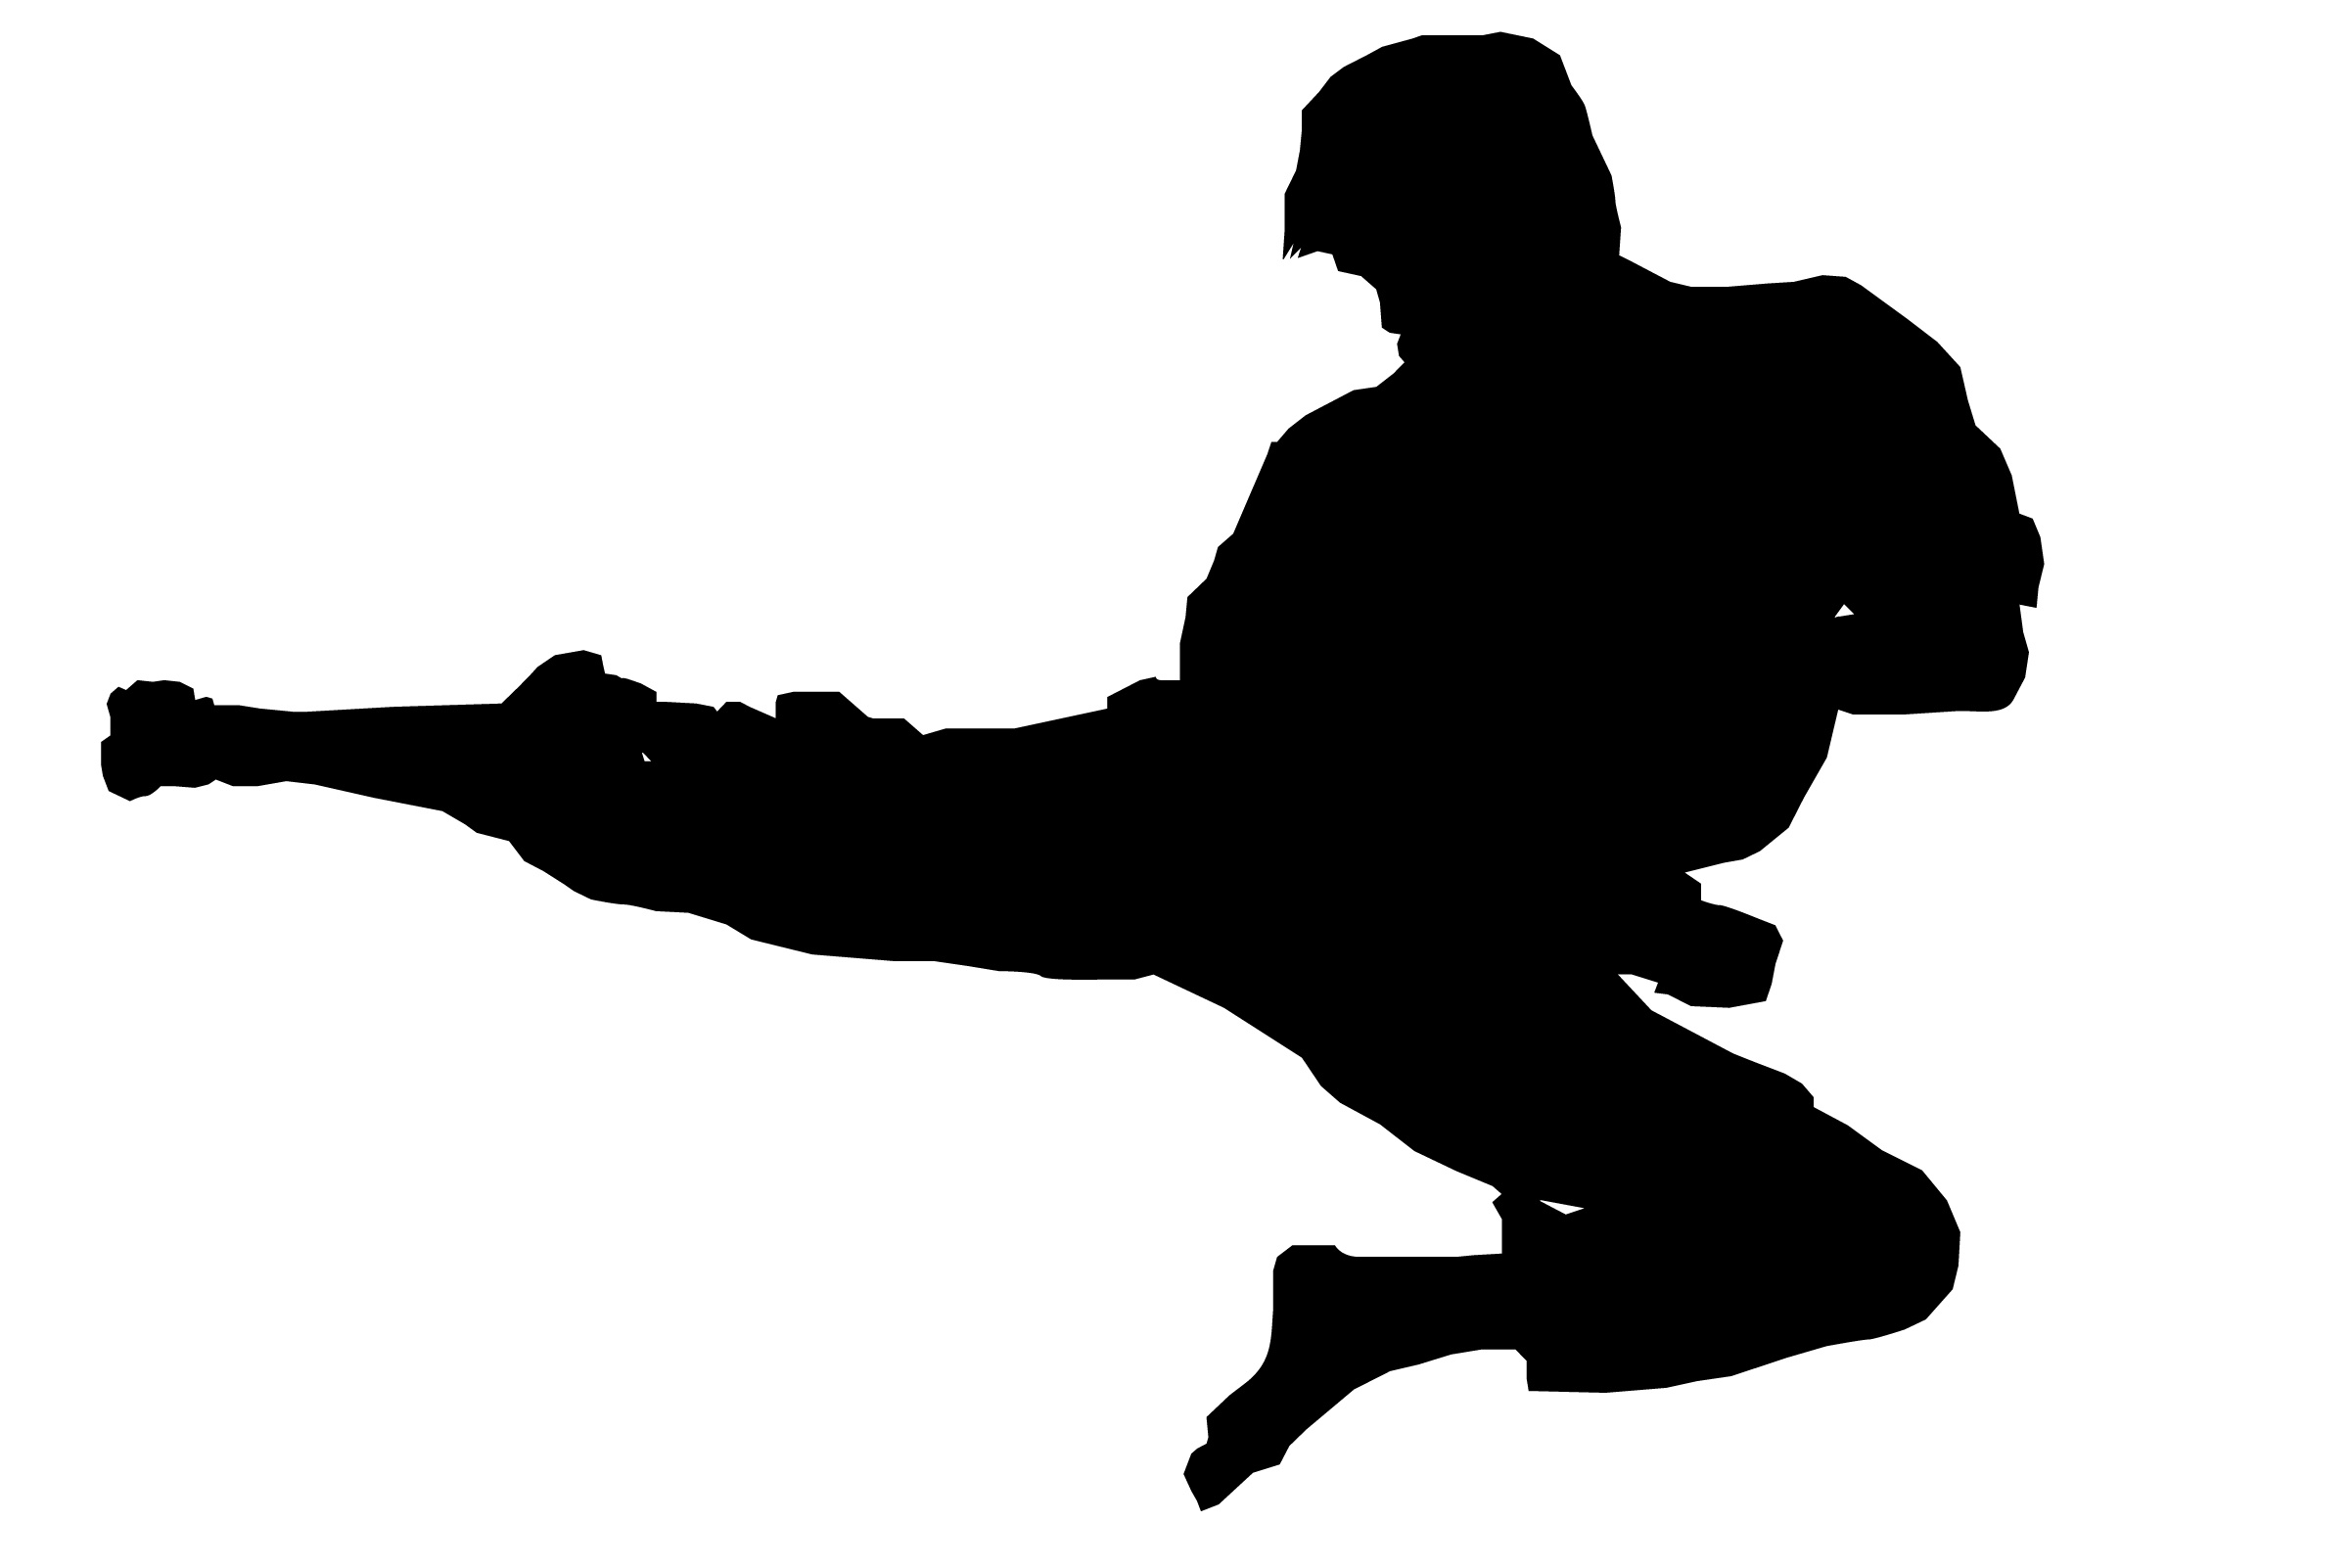 karate-silhouette-clip-art-karate-demonstration-1CDqDO-clipart.jpeg